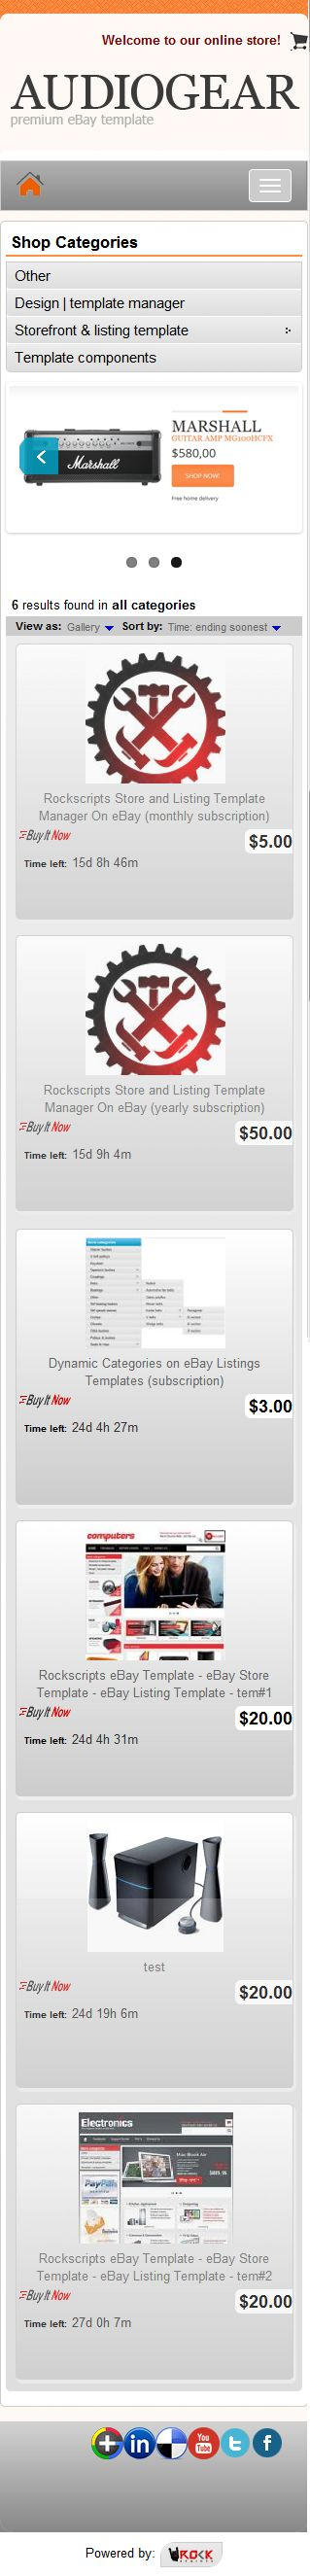 18 best Free eBay Template images on Pinterest | Business, Ebay ...